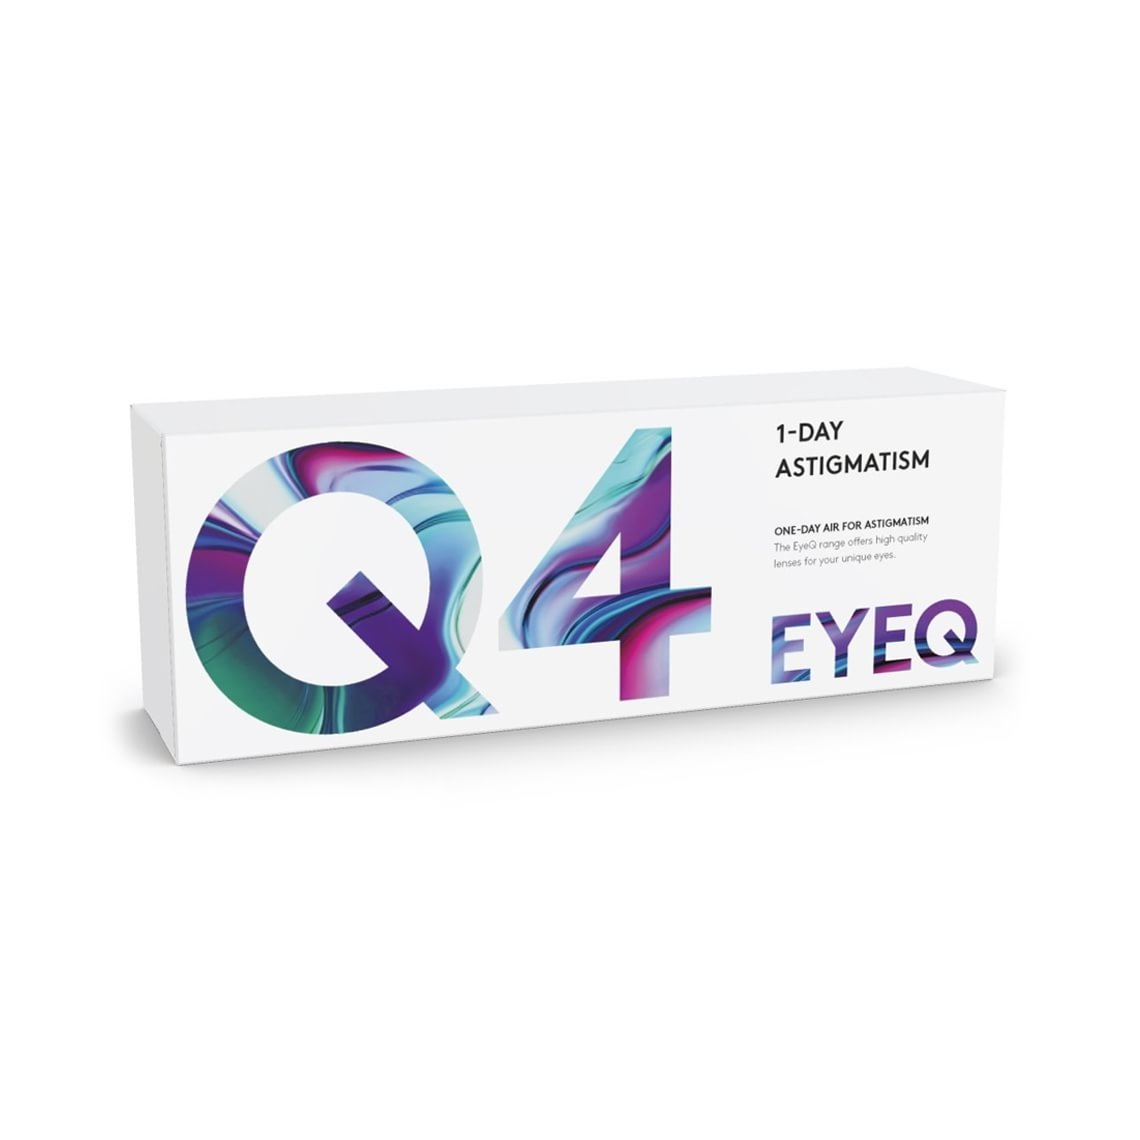 EyeQ One-Day Air For Astigmatism Q4 30 st/box